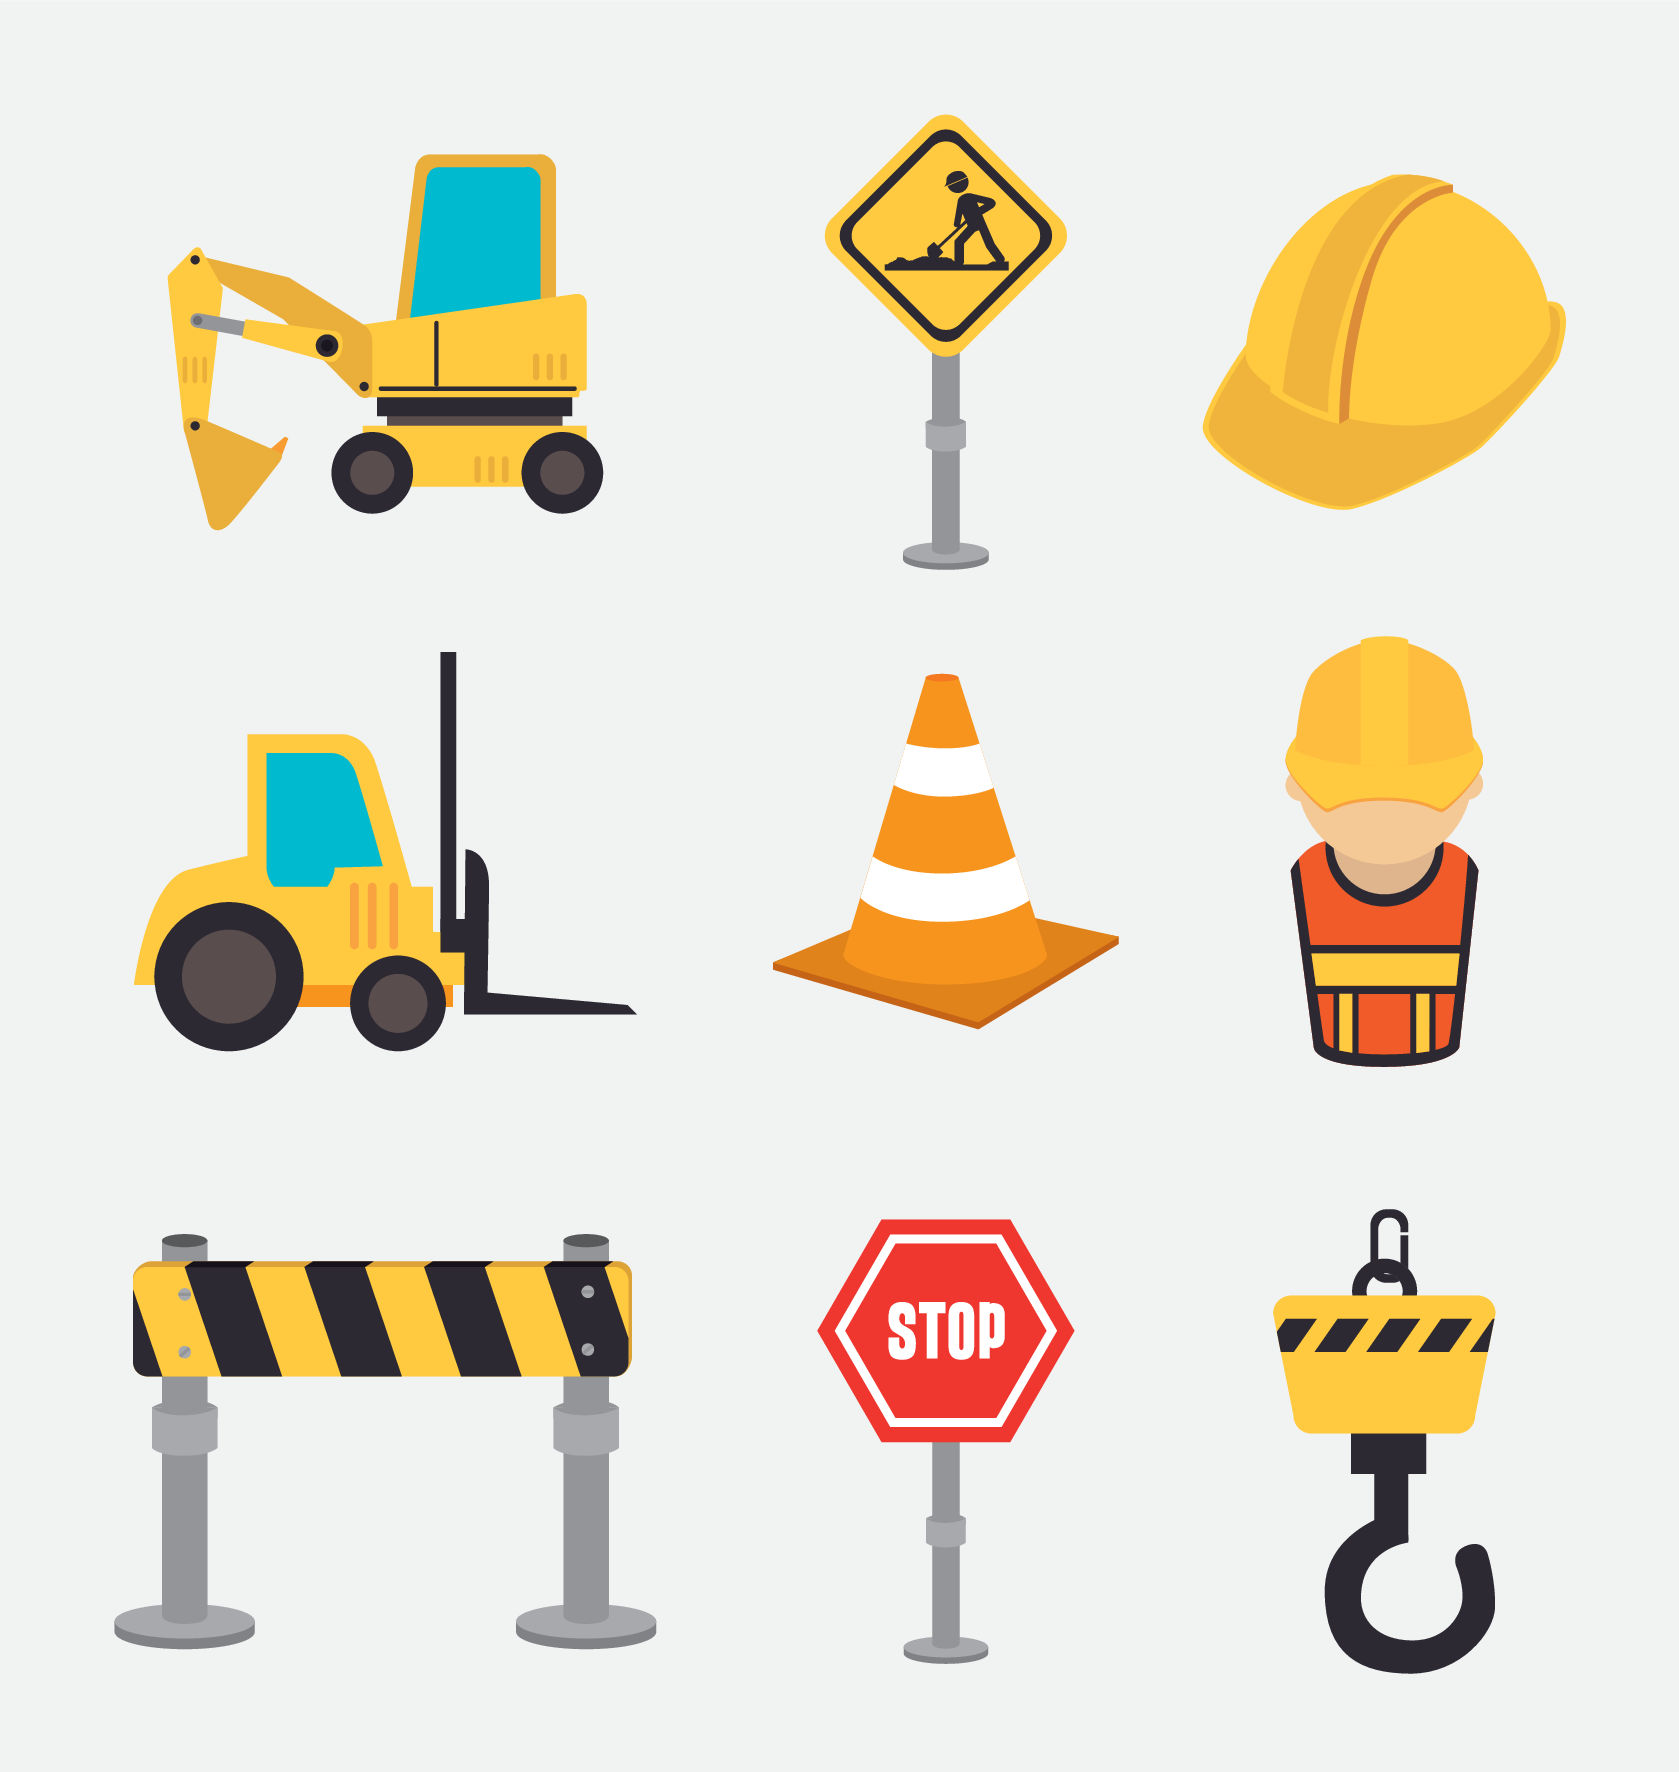 backhoe-safety-training-heavy-equipment-colleges-america